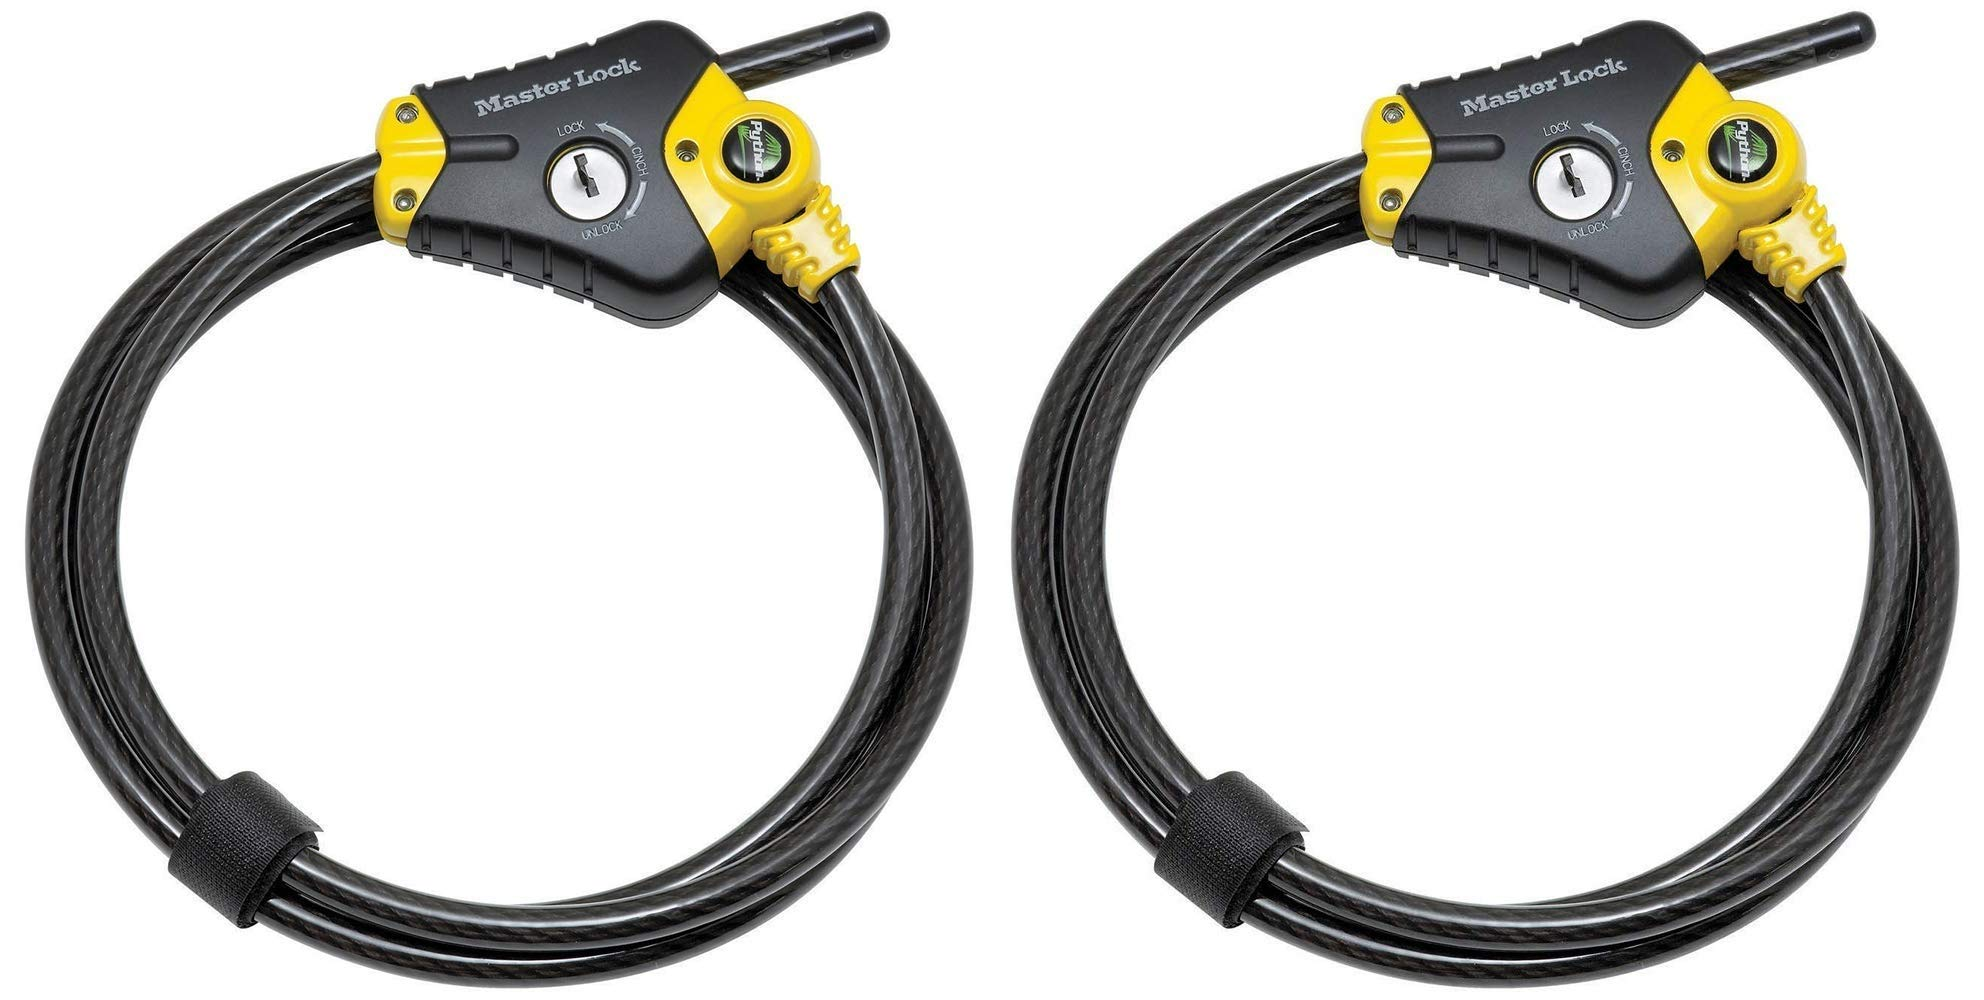 Master Lock 8413DPF 6' Python Adjustable Locking Cable - Pack of 2